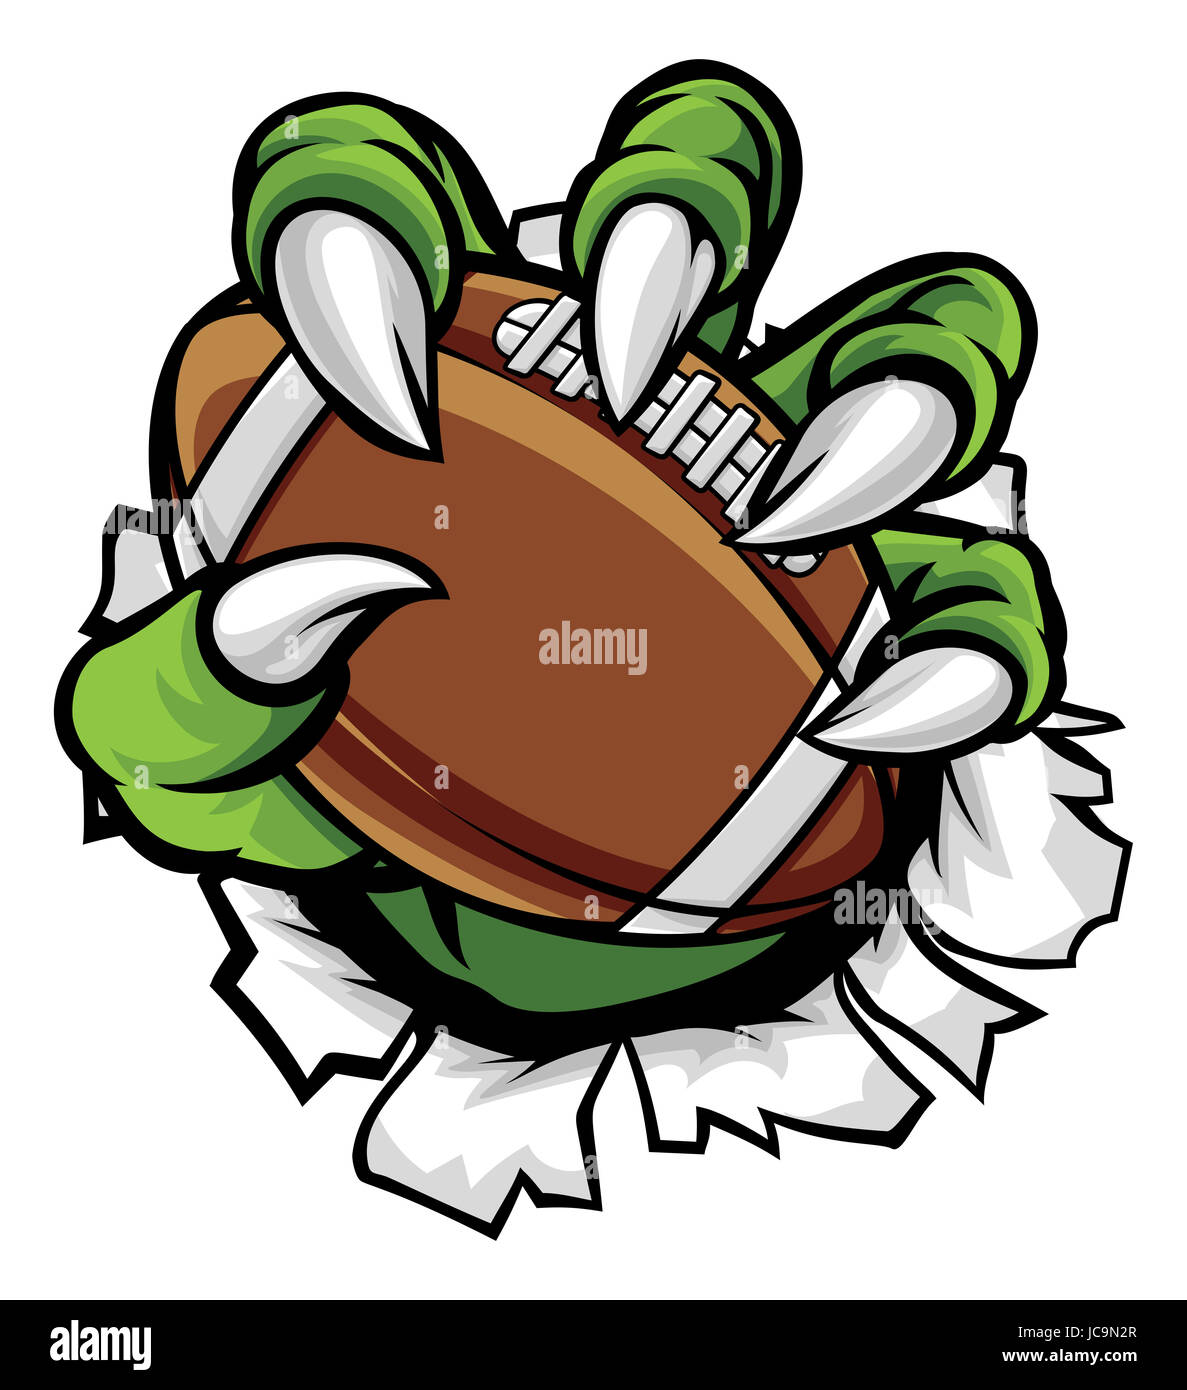 a monster or animal claw holding an american football ball and stock